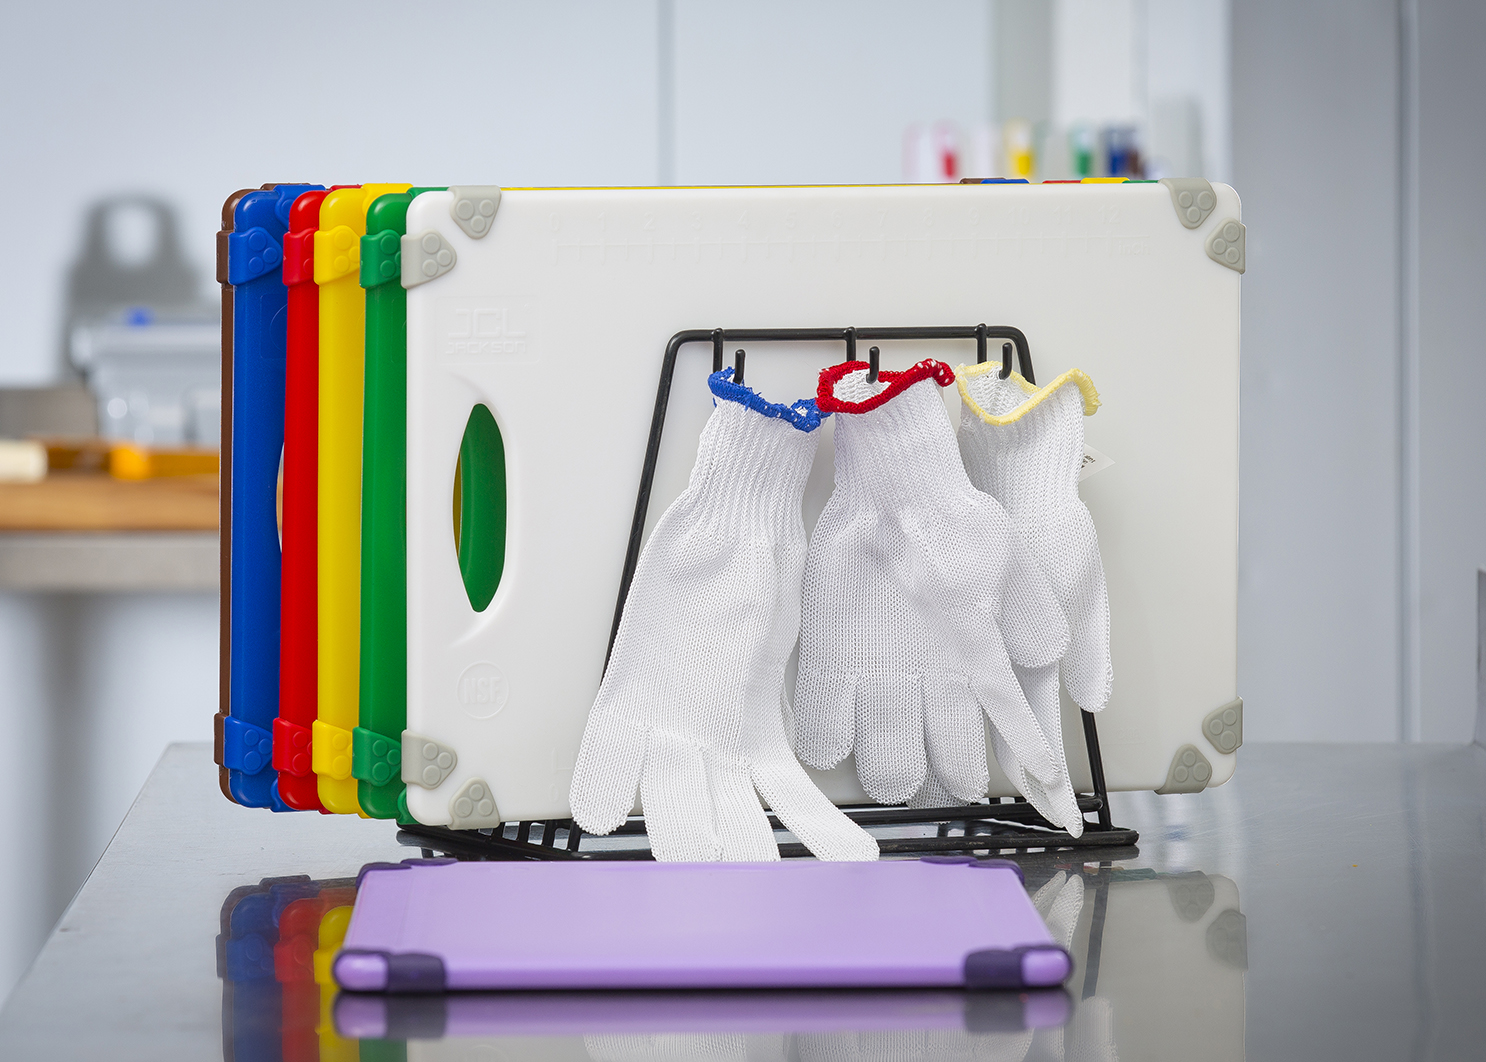 Cutting board racks in kitchen with gloves